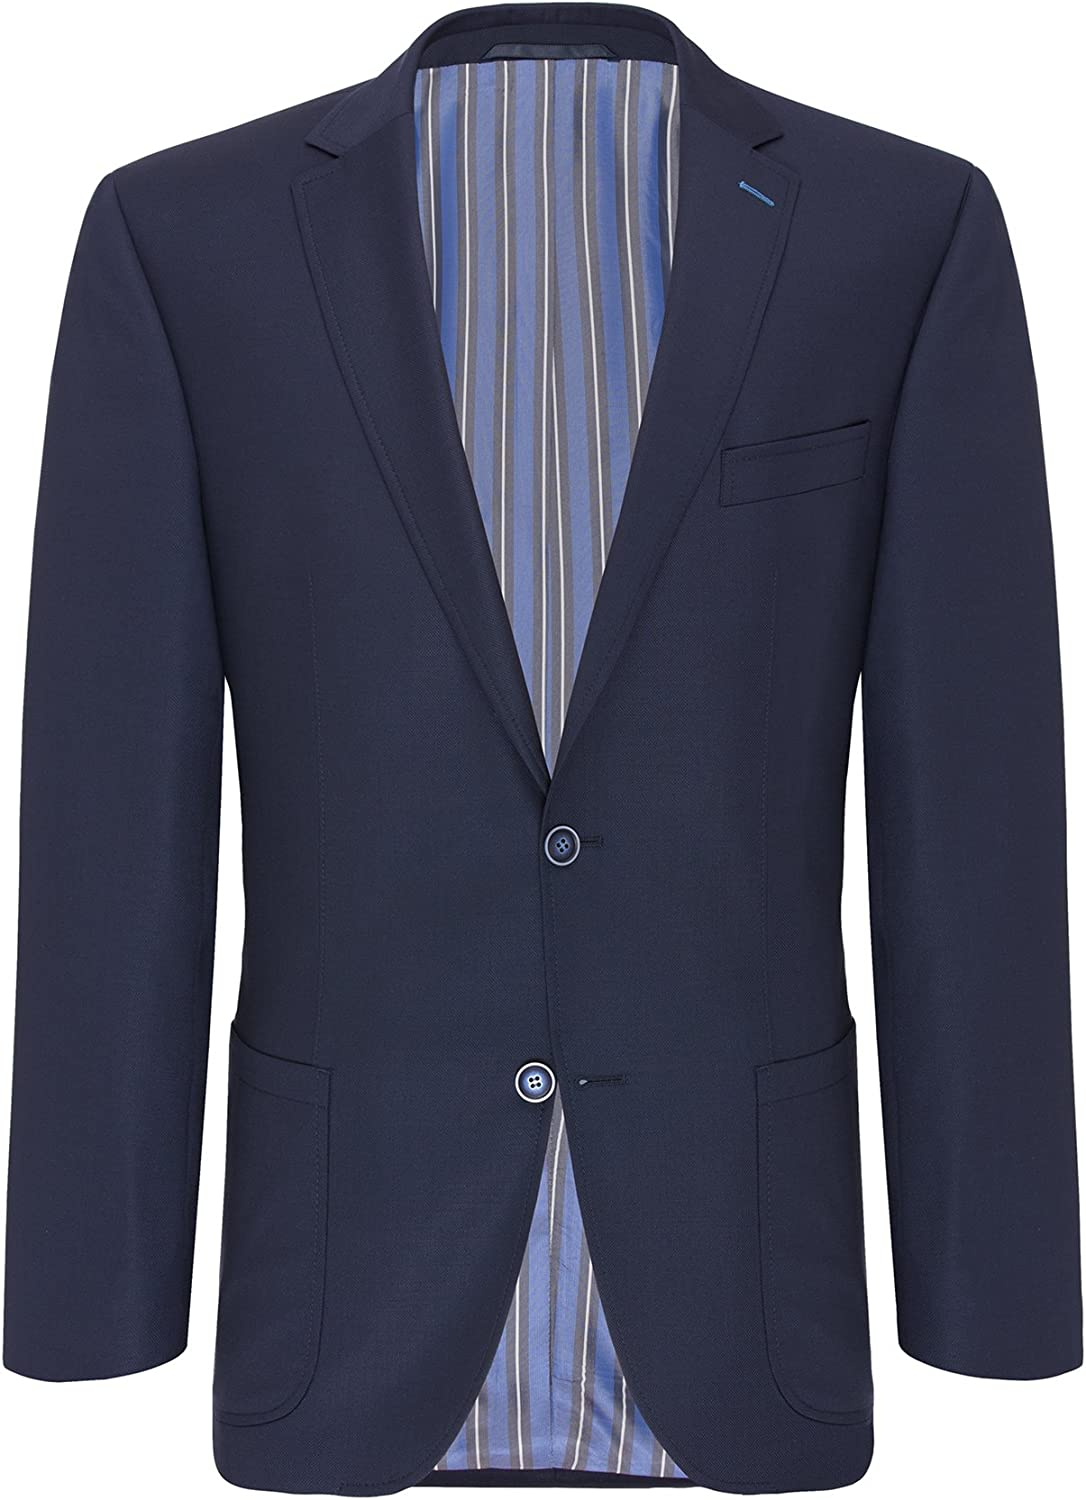 CARL GROSS Sinclair SS Blazer Uomo